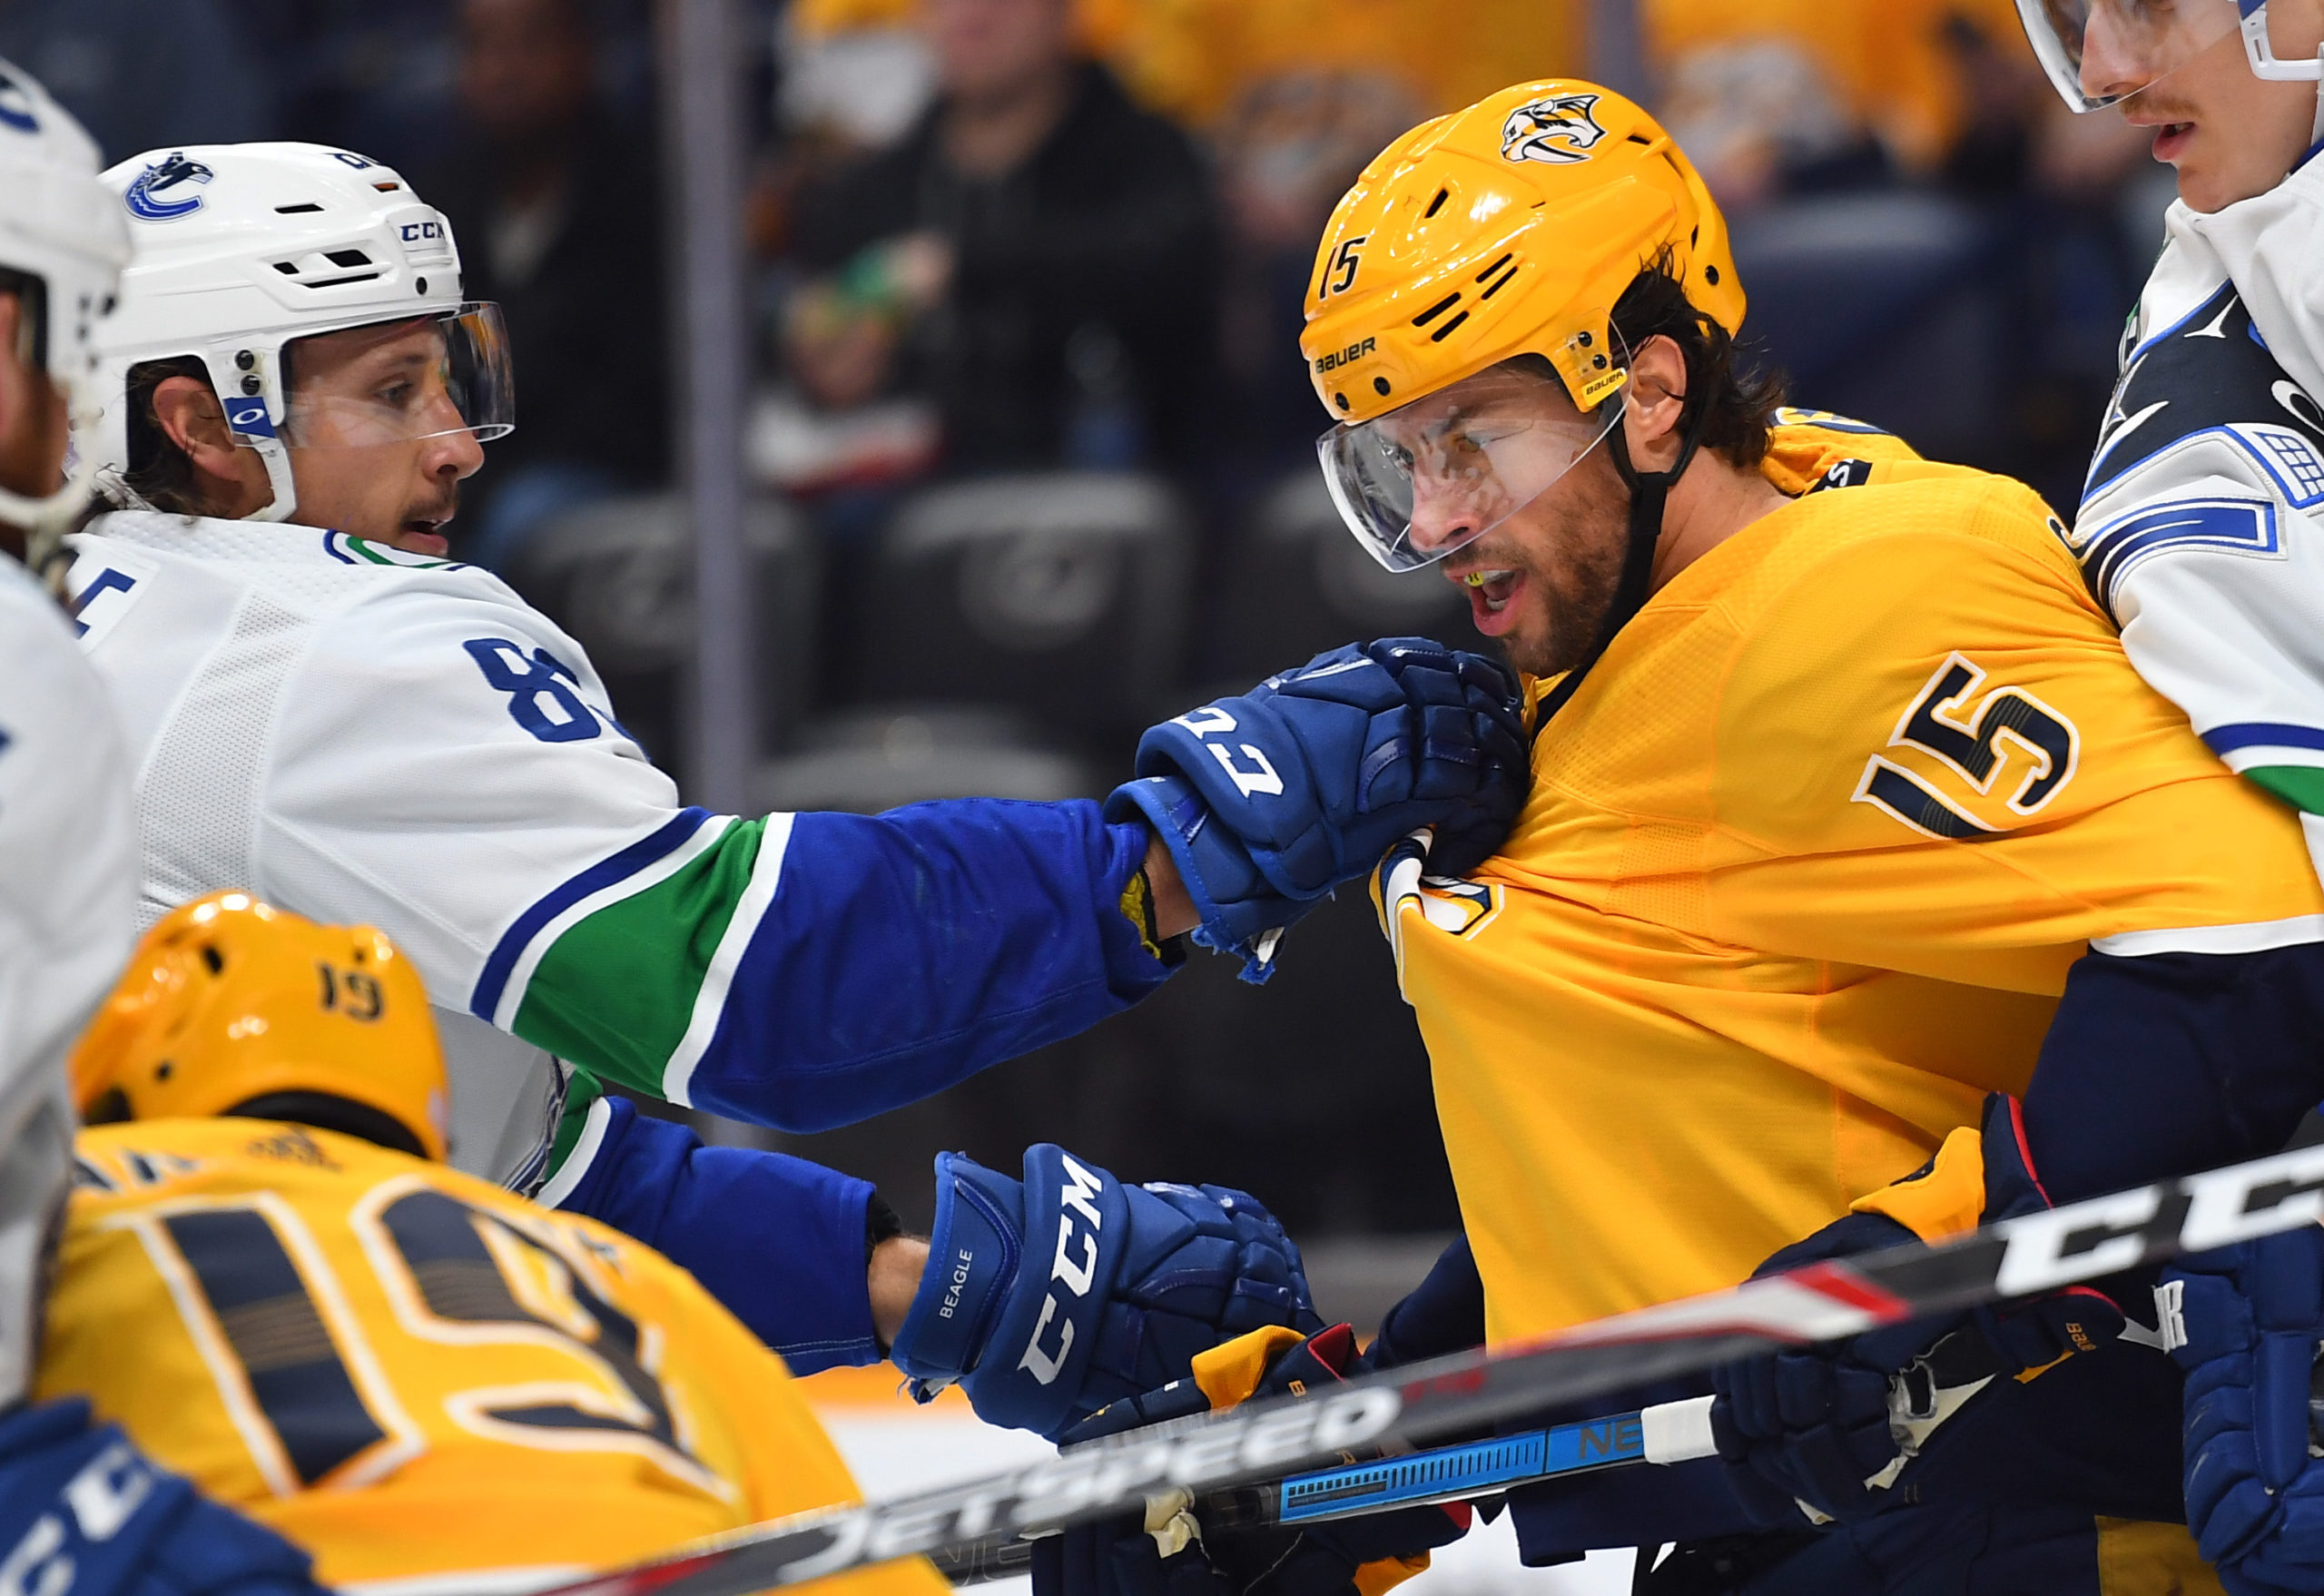 The Canucks Miss Sutter and Beagle